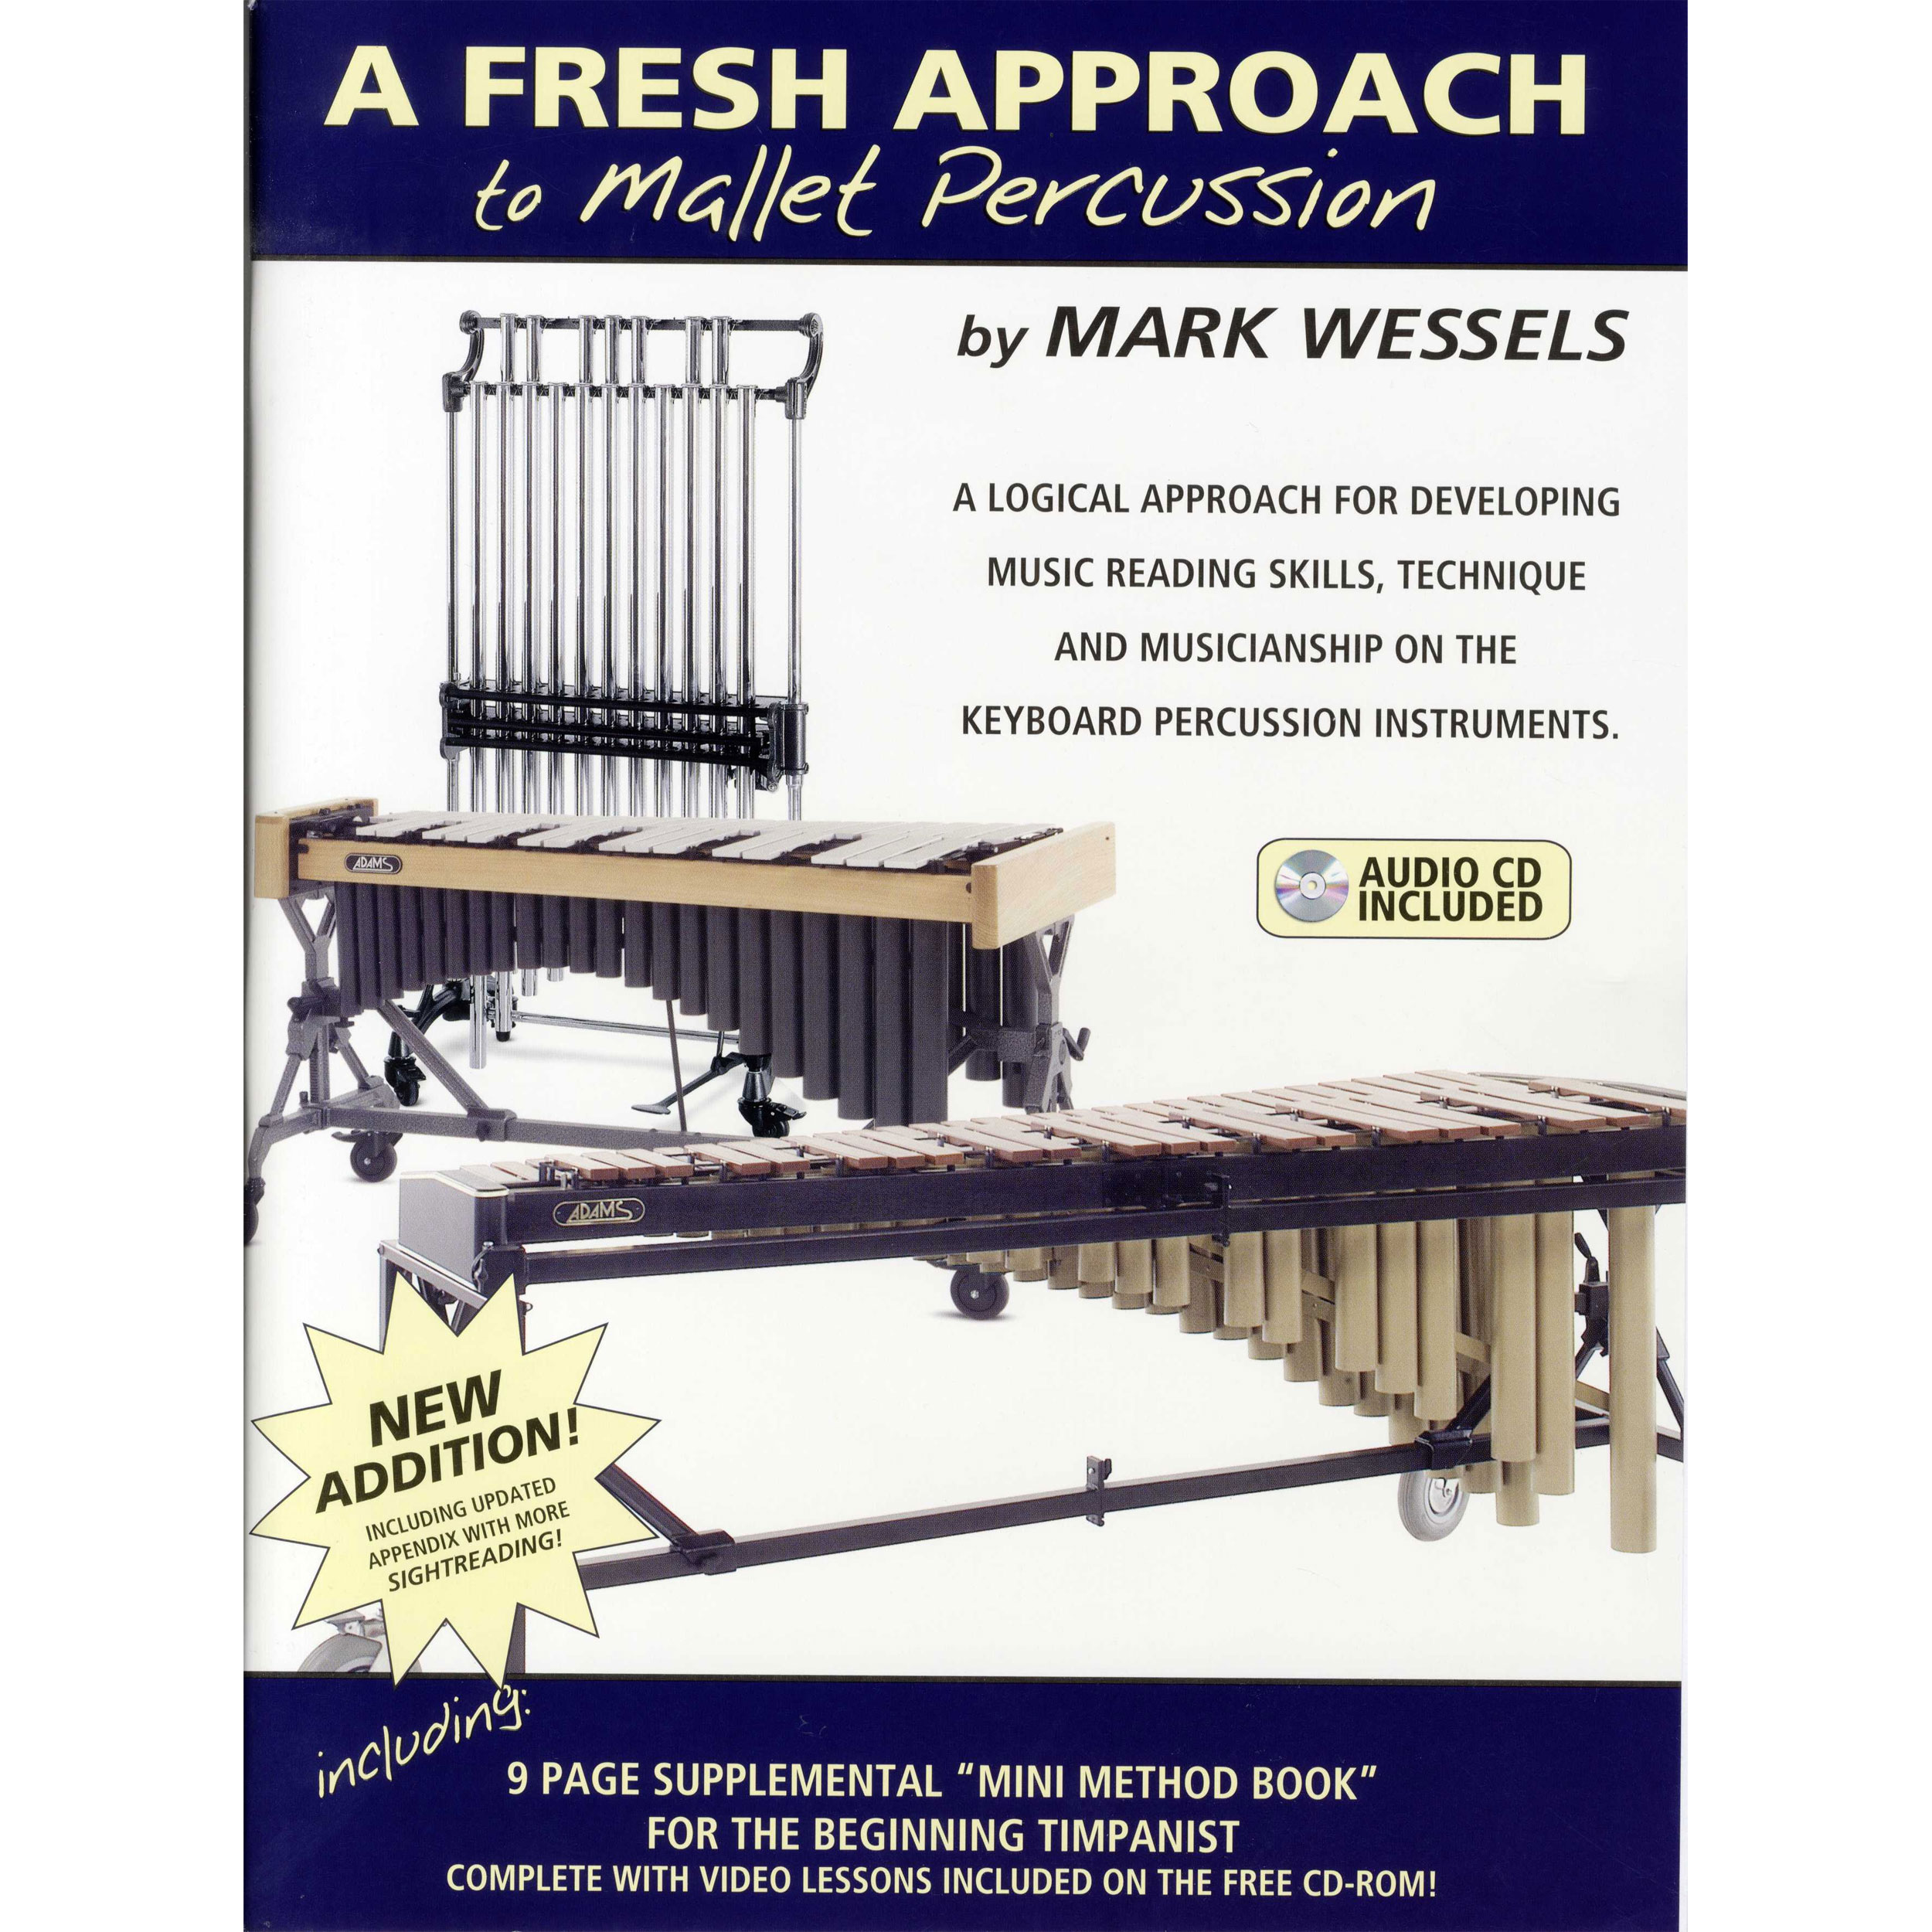 A Fresh Approach to Mallet Percussion by Mark Wessels